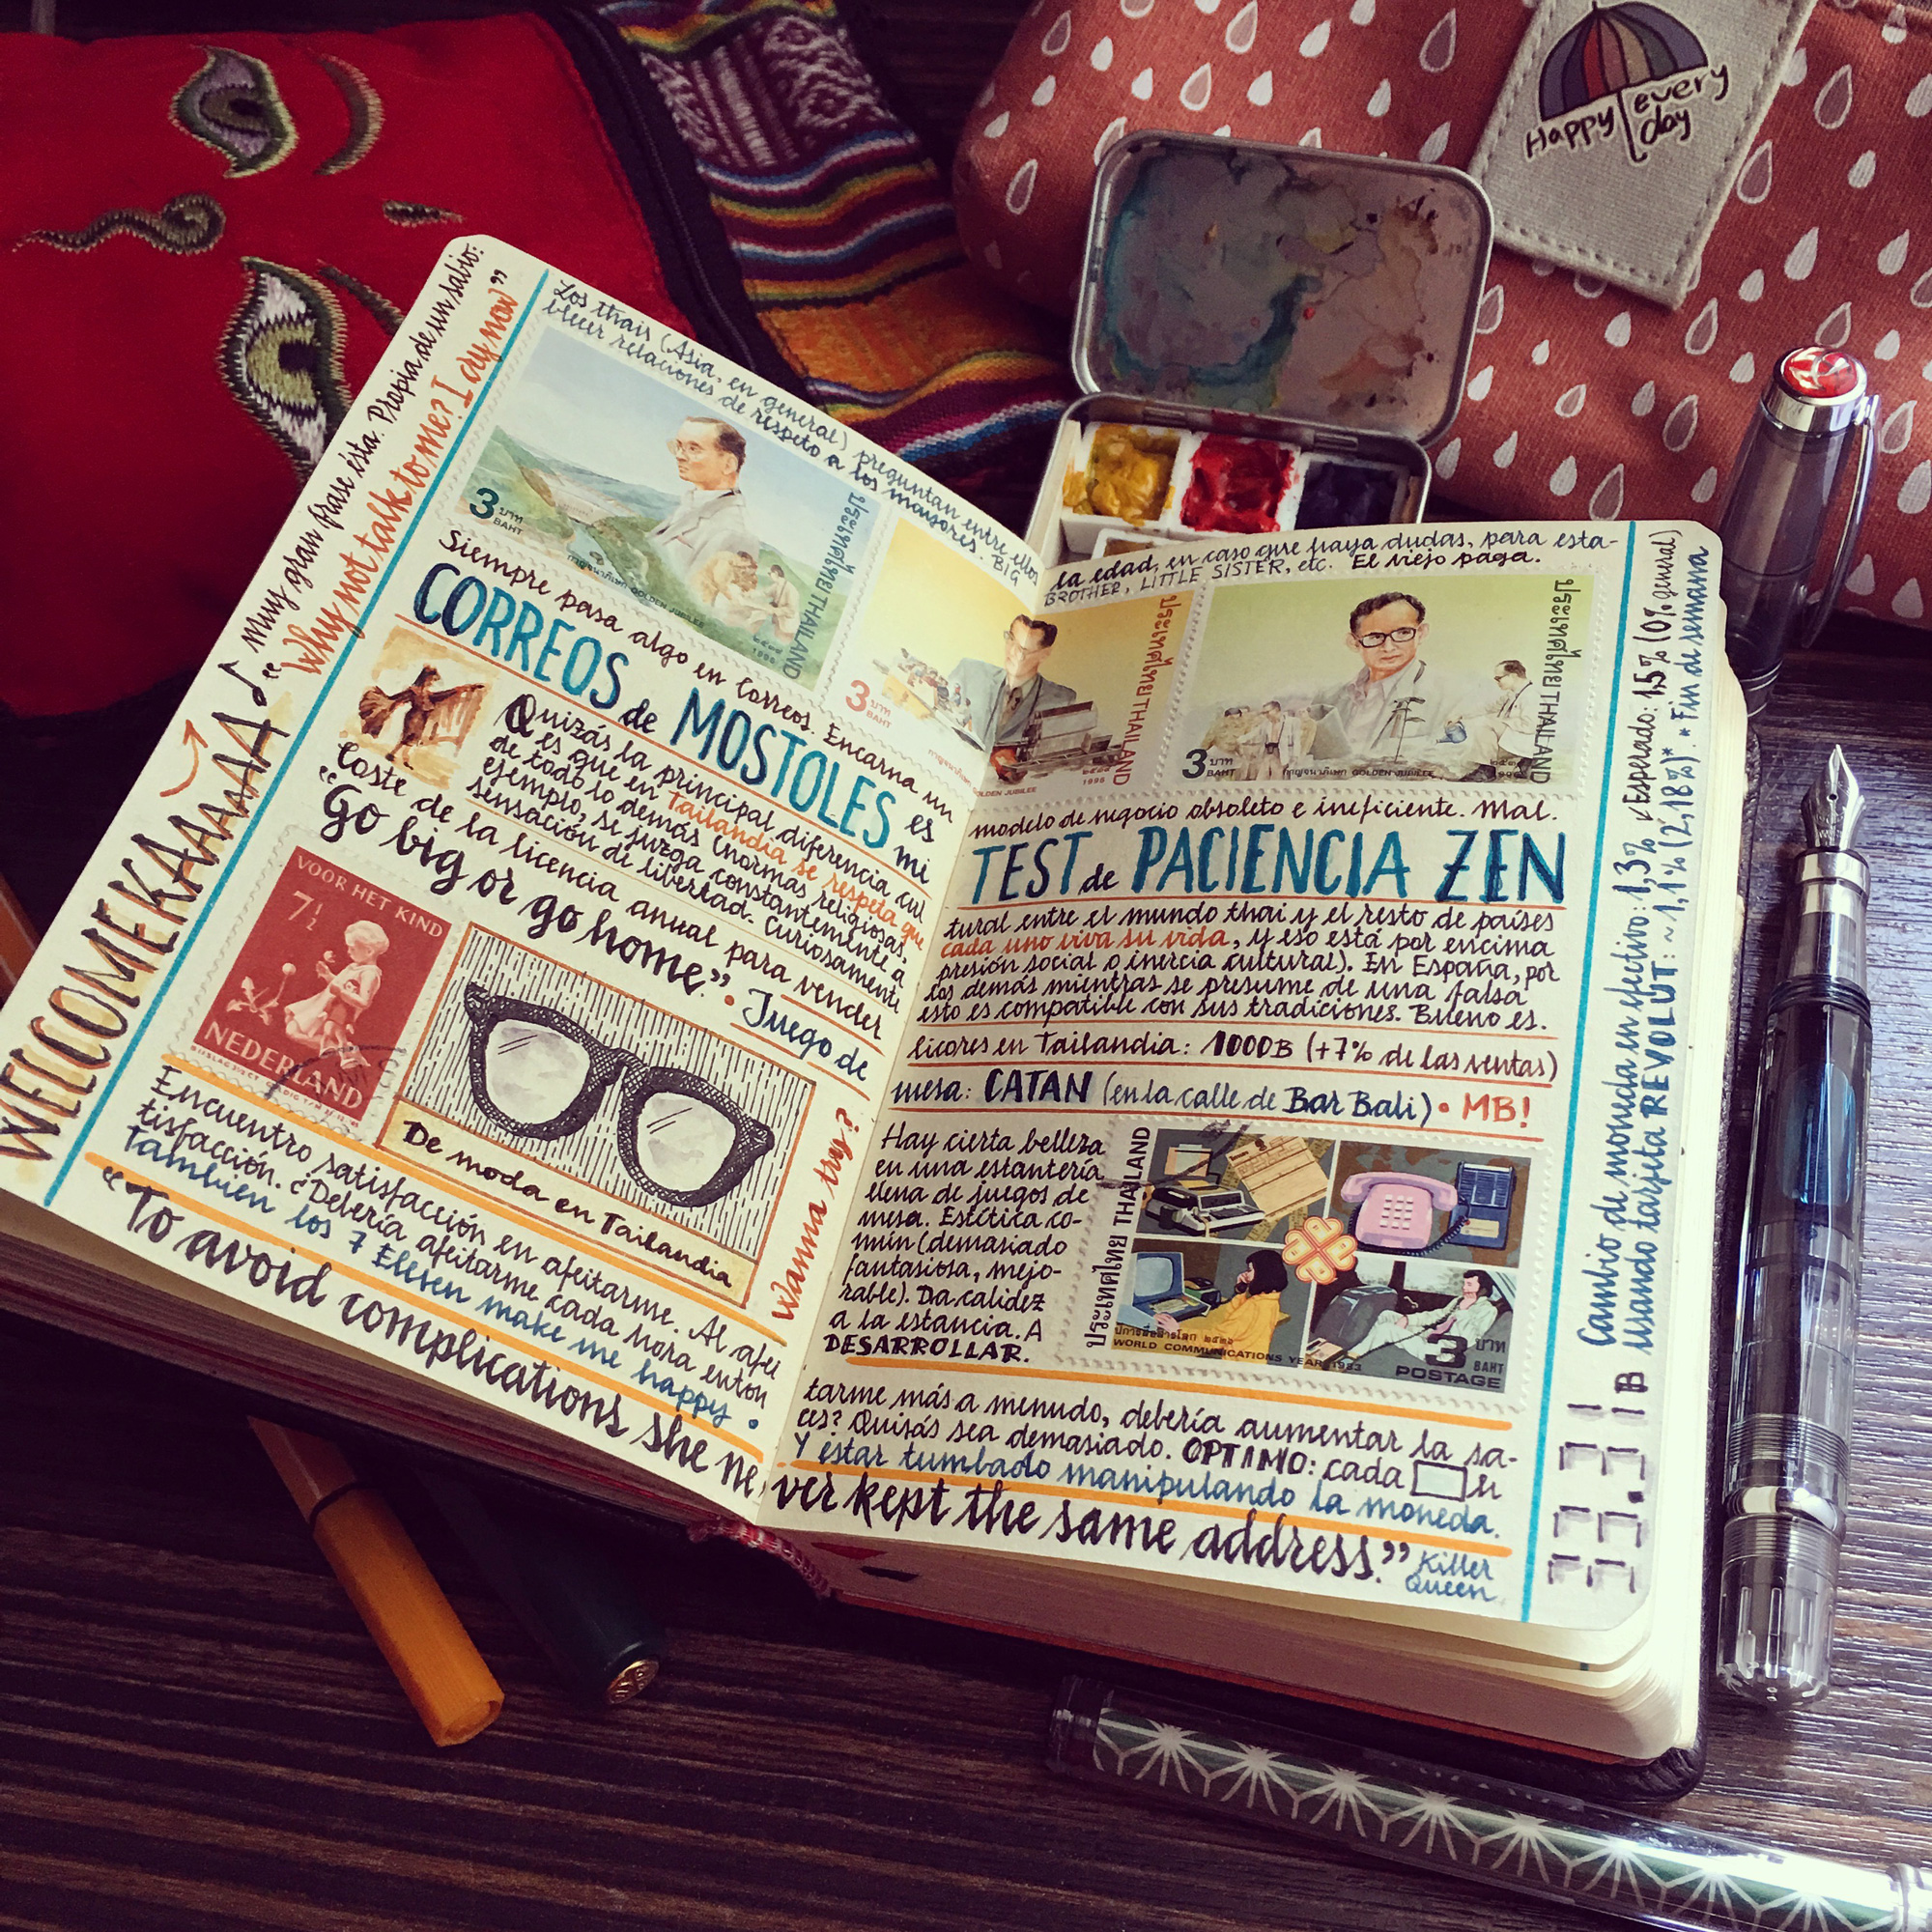 Handmade Sketchbooks Teeming with Colorful Calligraphy, Diagrams, Sketches, and Travel Ephemera by Jose Naranja